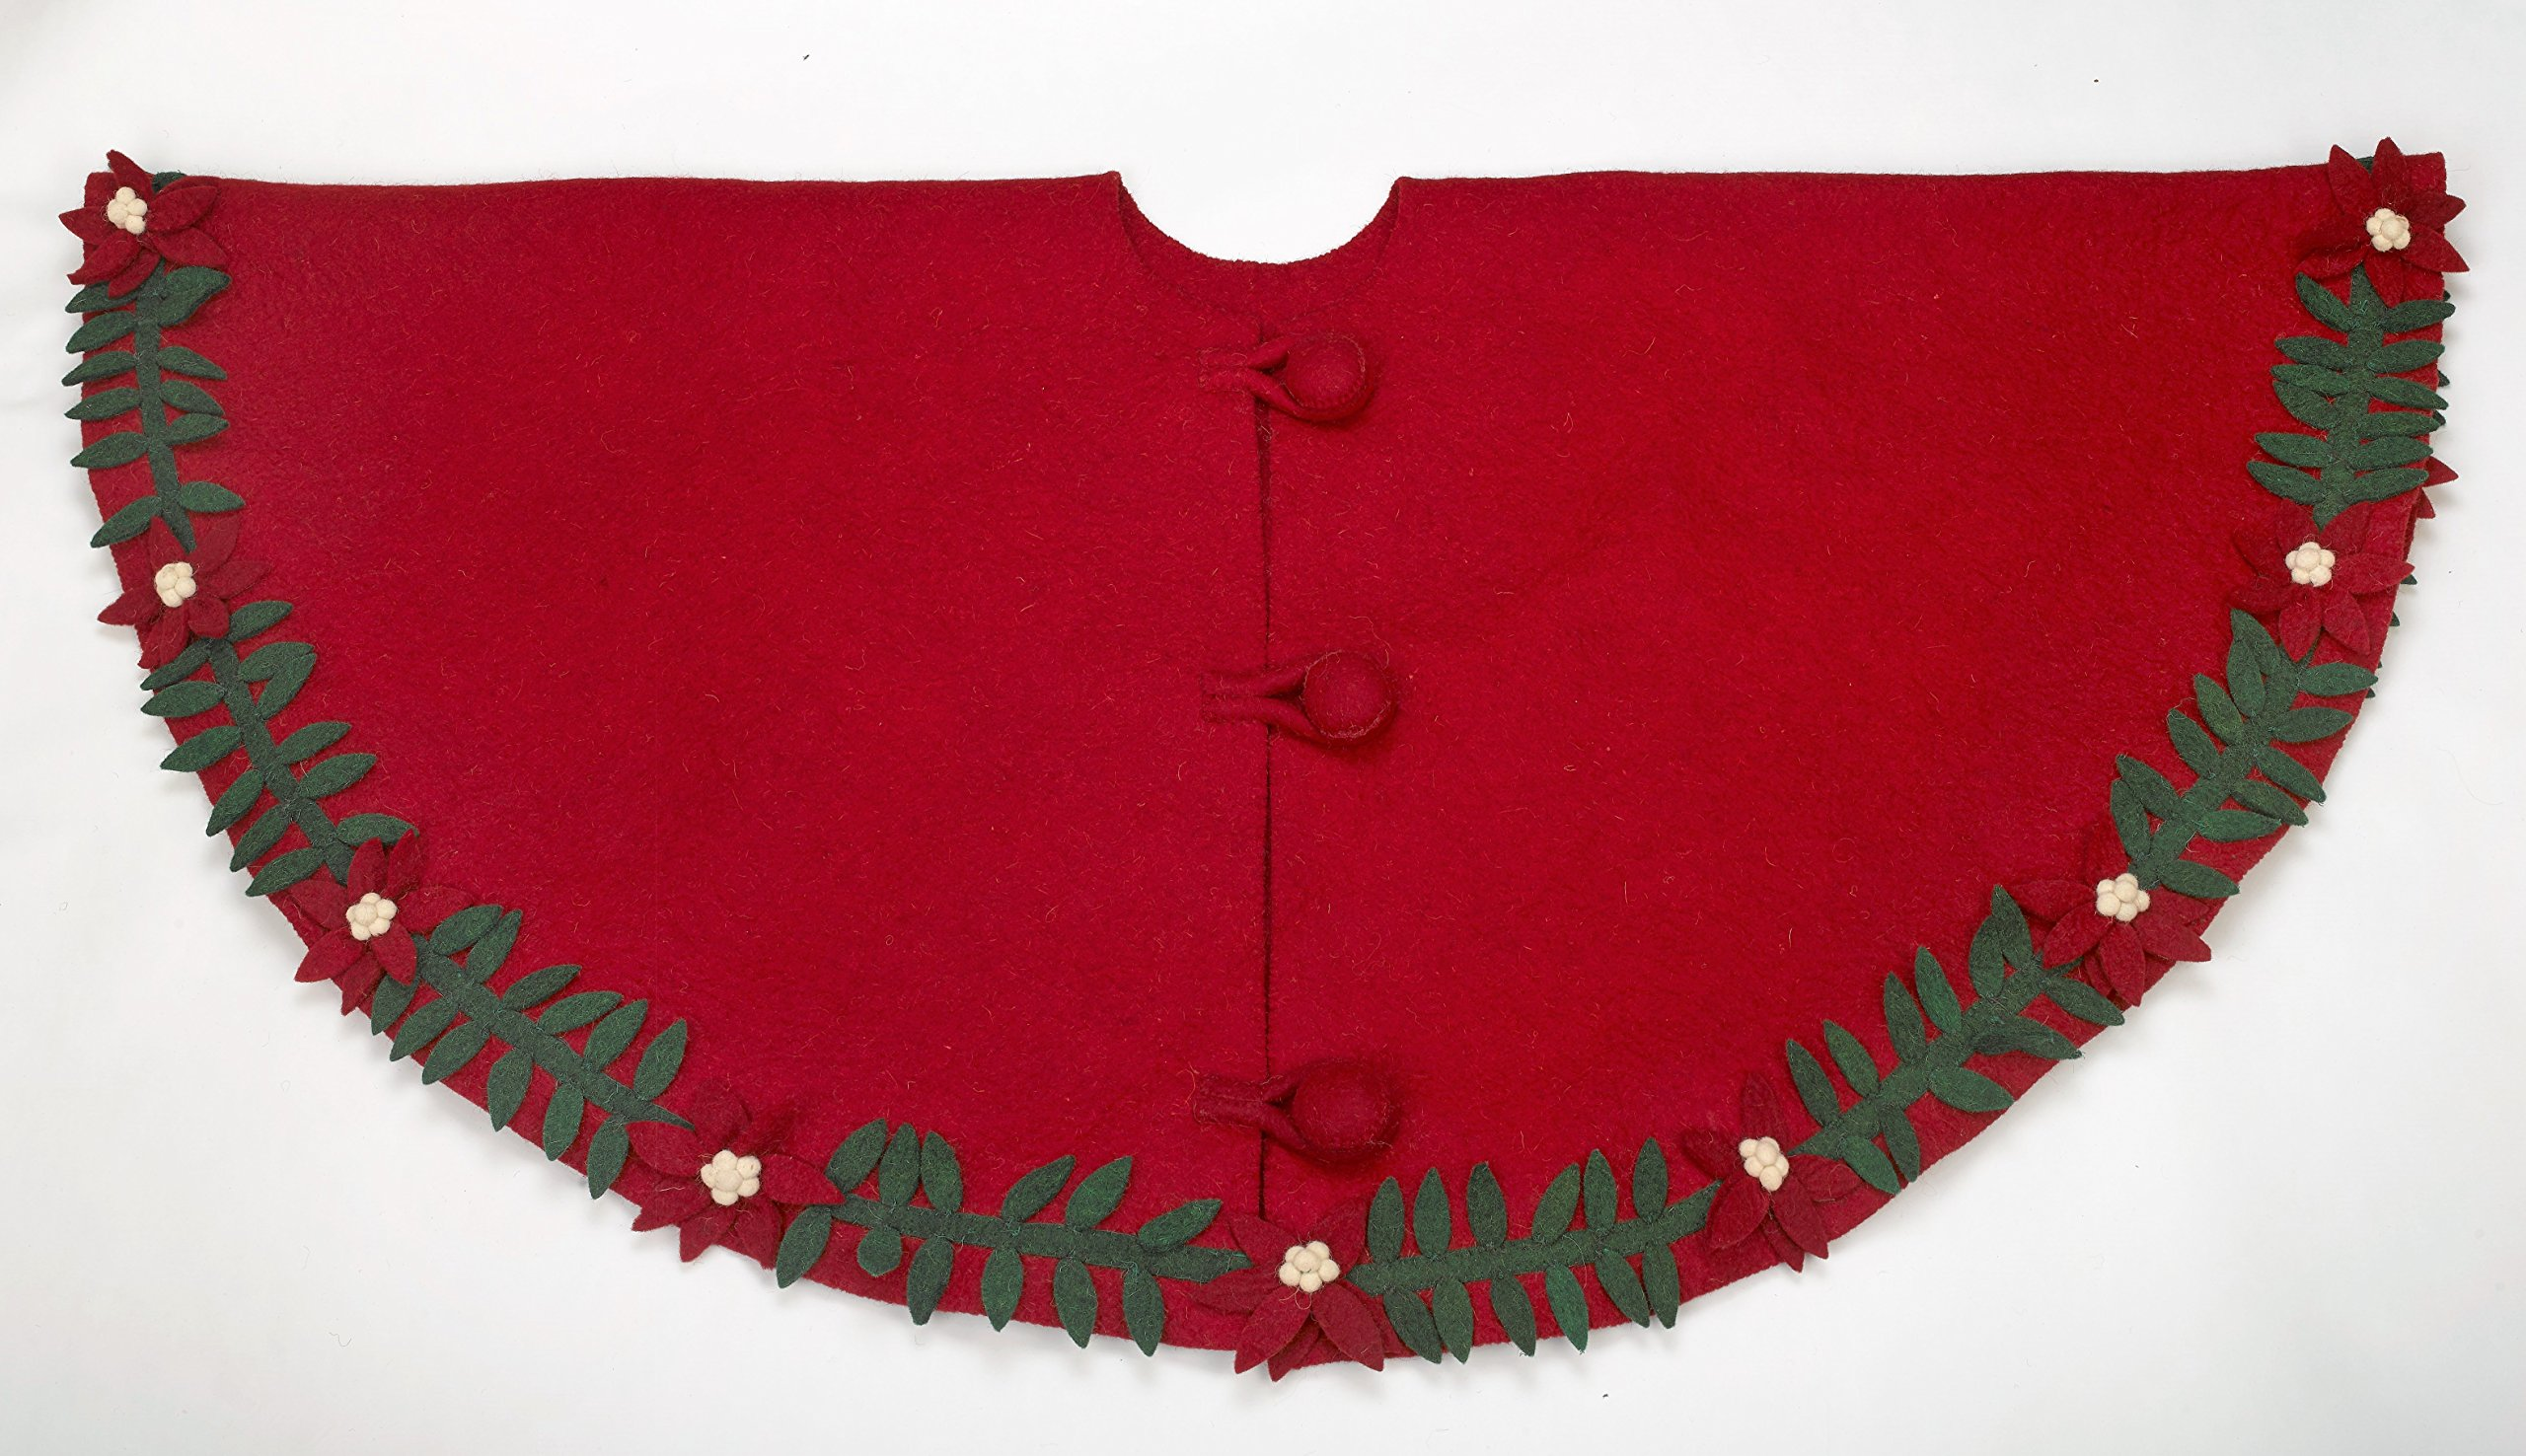 Arcadia Home Poinsettia Wreath Tree Skirt in Hand Felted Wool